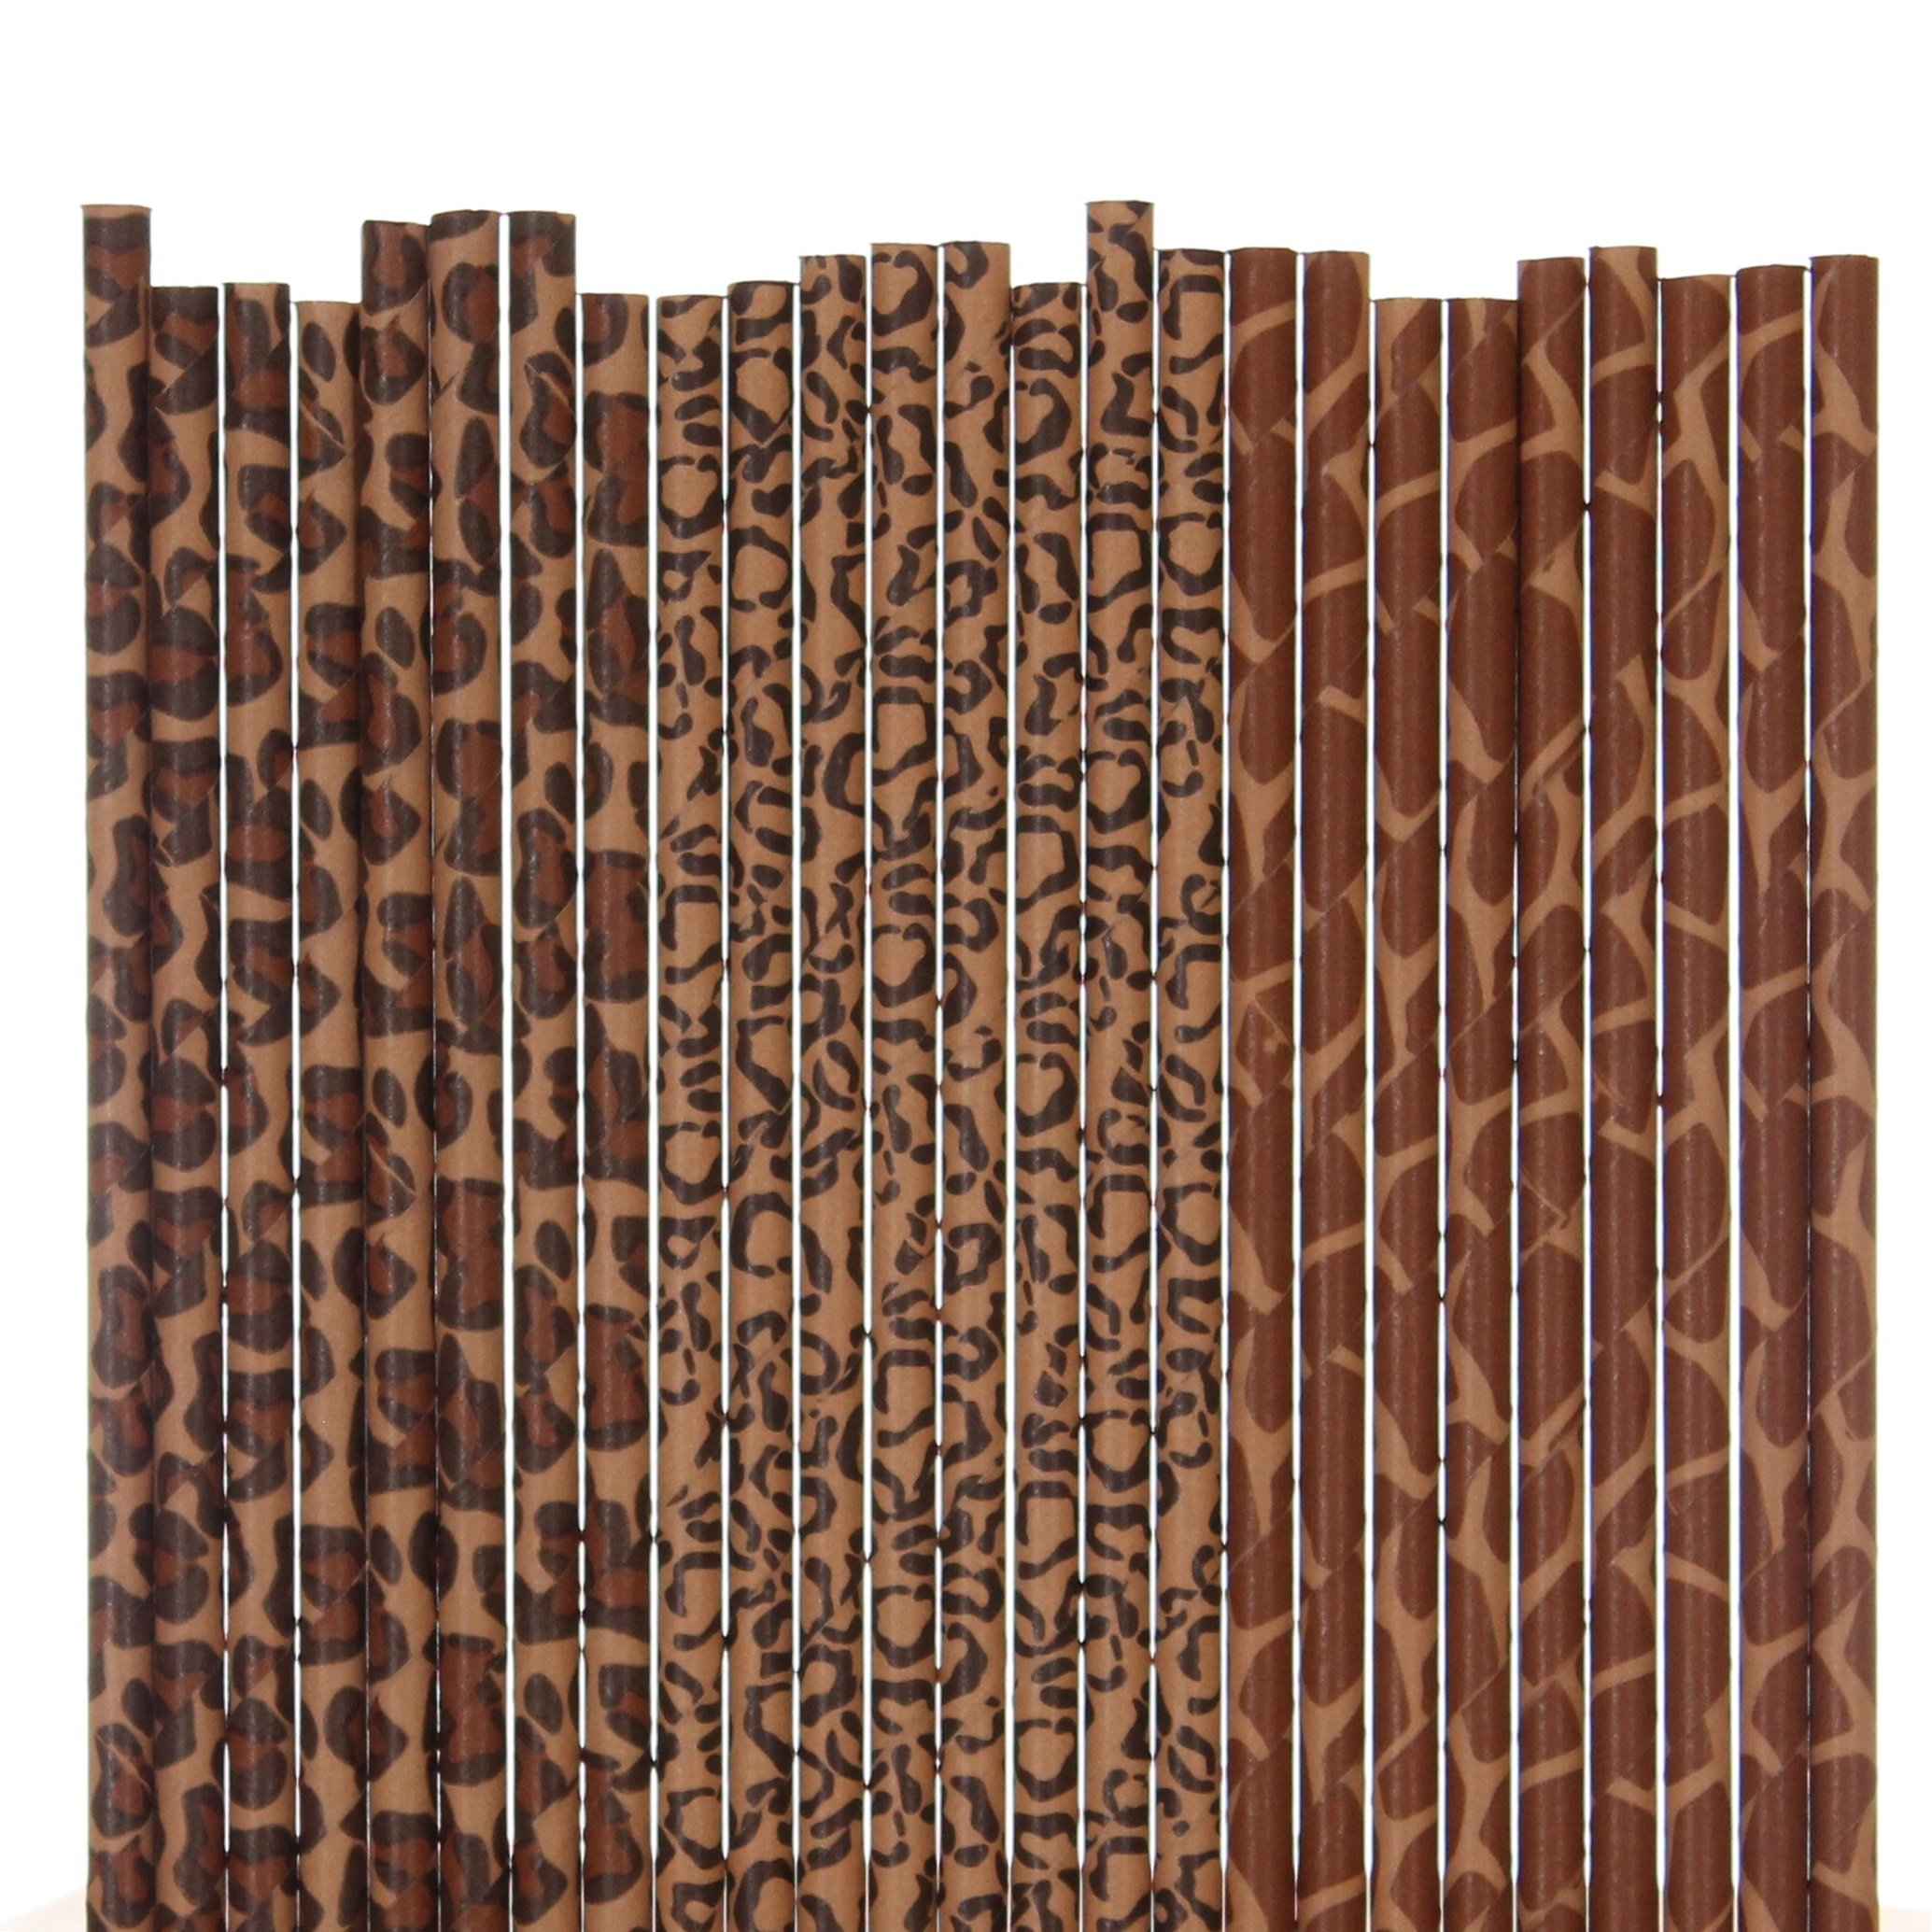 Biodegradable Paper Straws Mix, Animal Print, Giraffe Cheetah Leopard (75) by Eve's Party Market